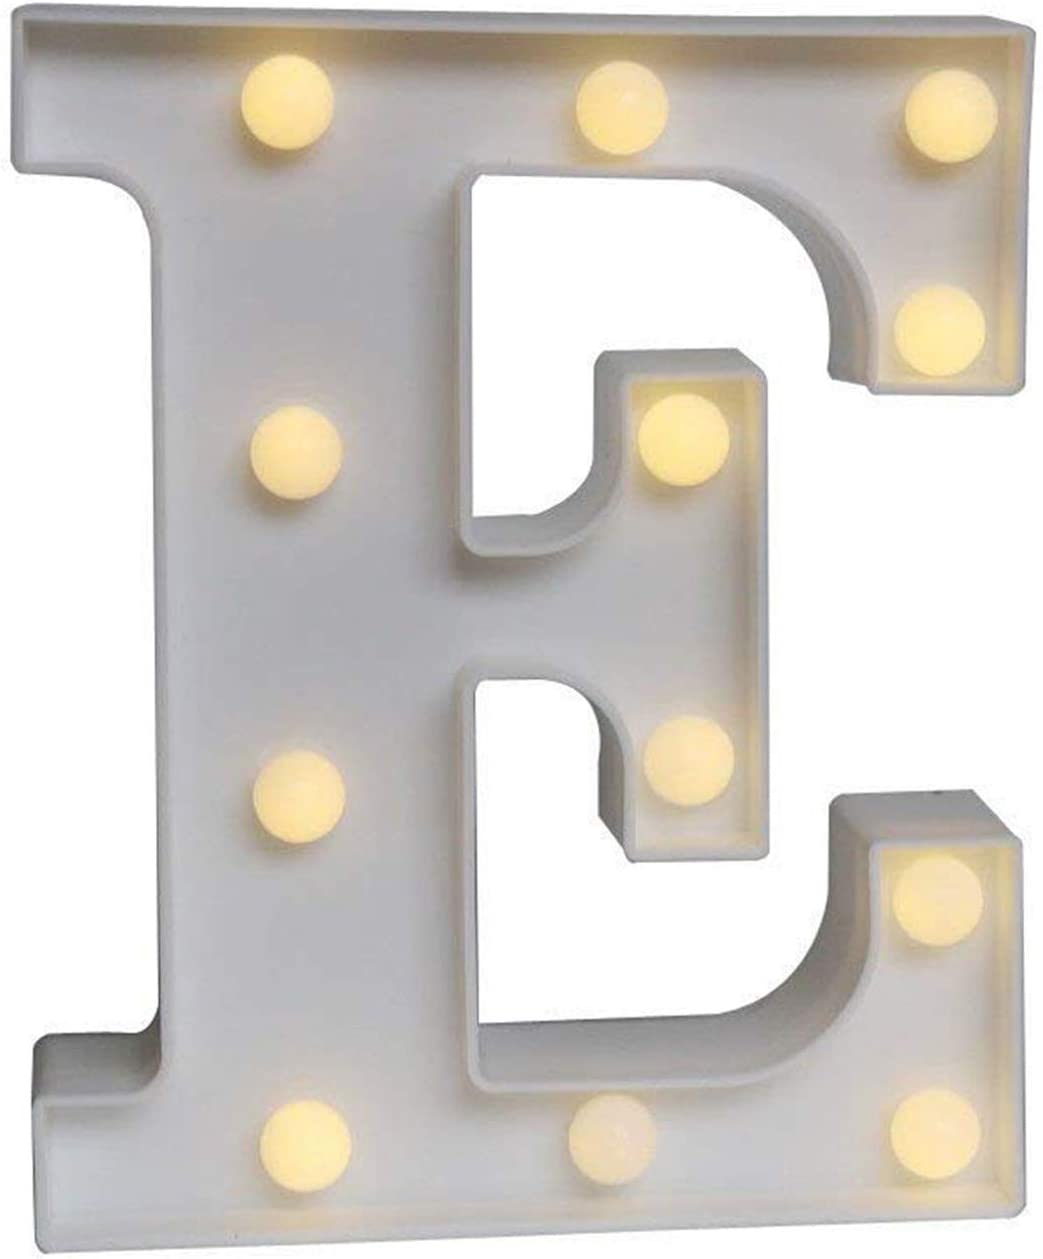 Ogrmar Decorative Led Light Up Number Letters, White Plastic Marquee Number Lights Sign Party Wedding Decor Battery Operated (E)